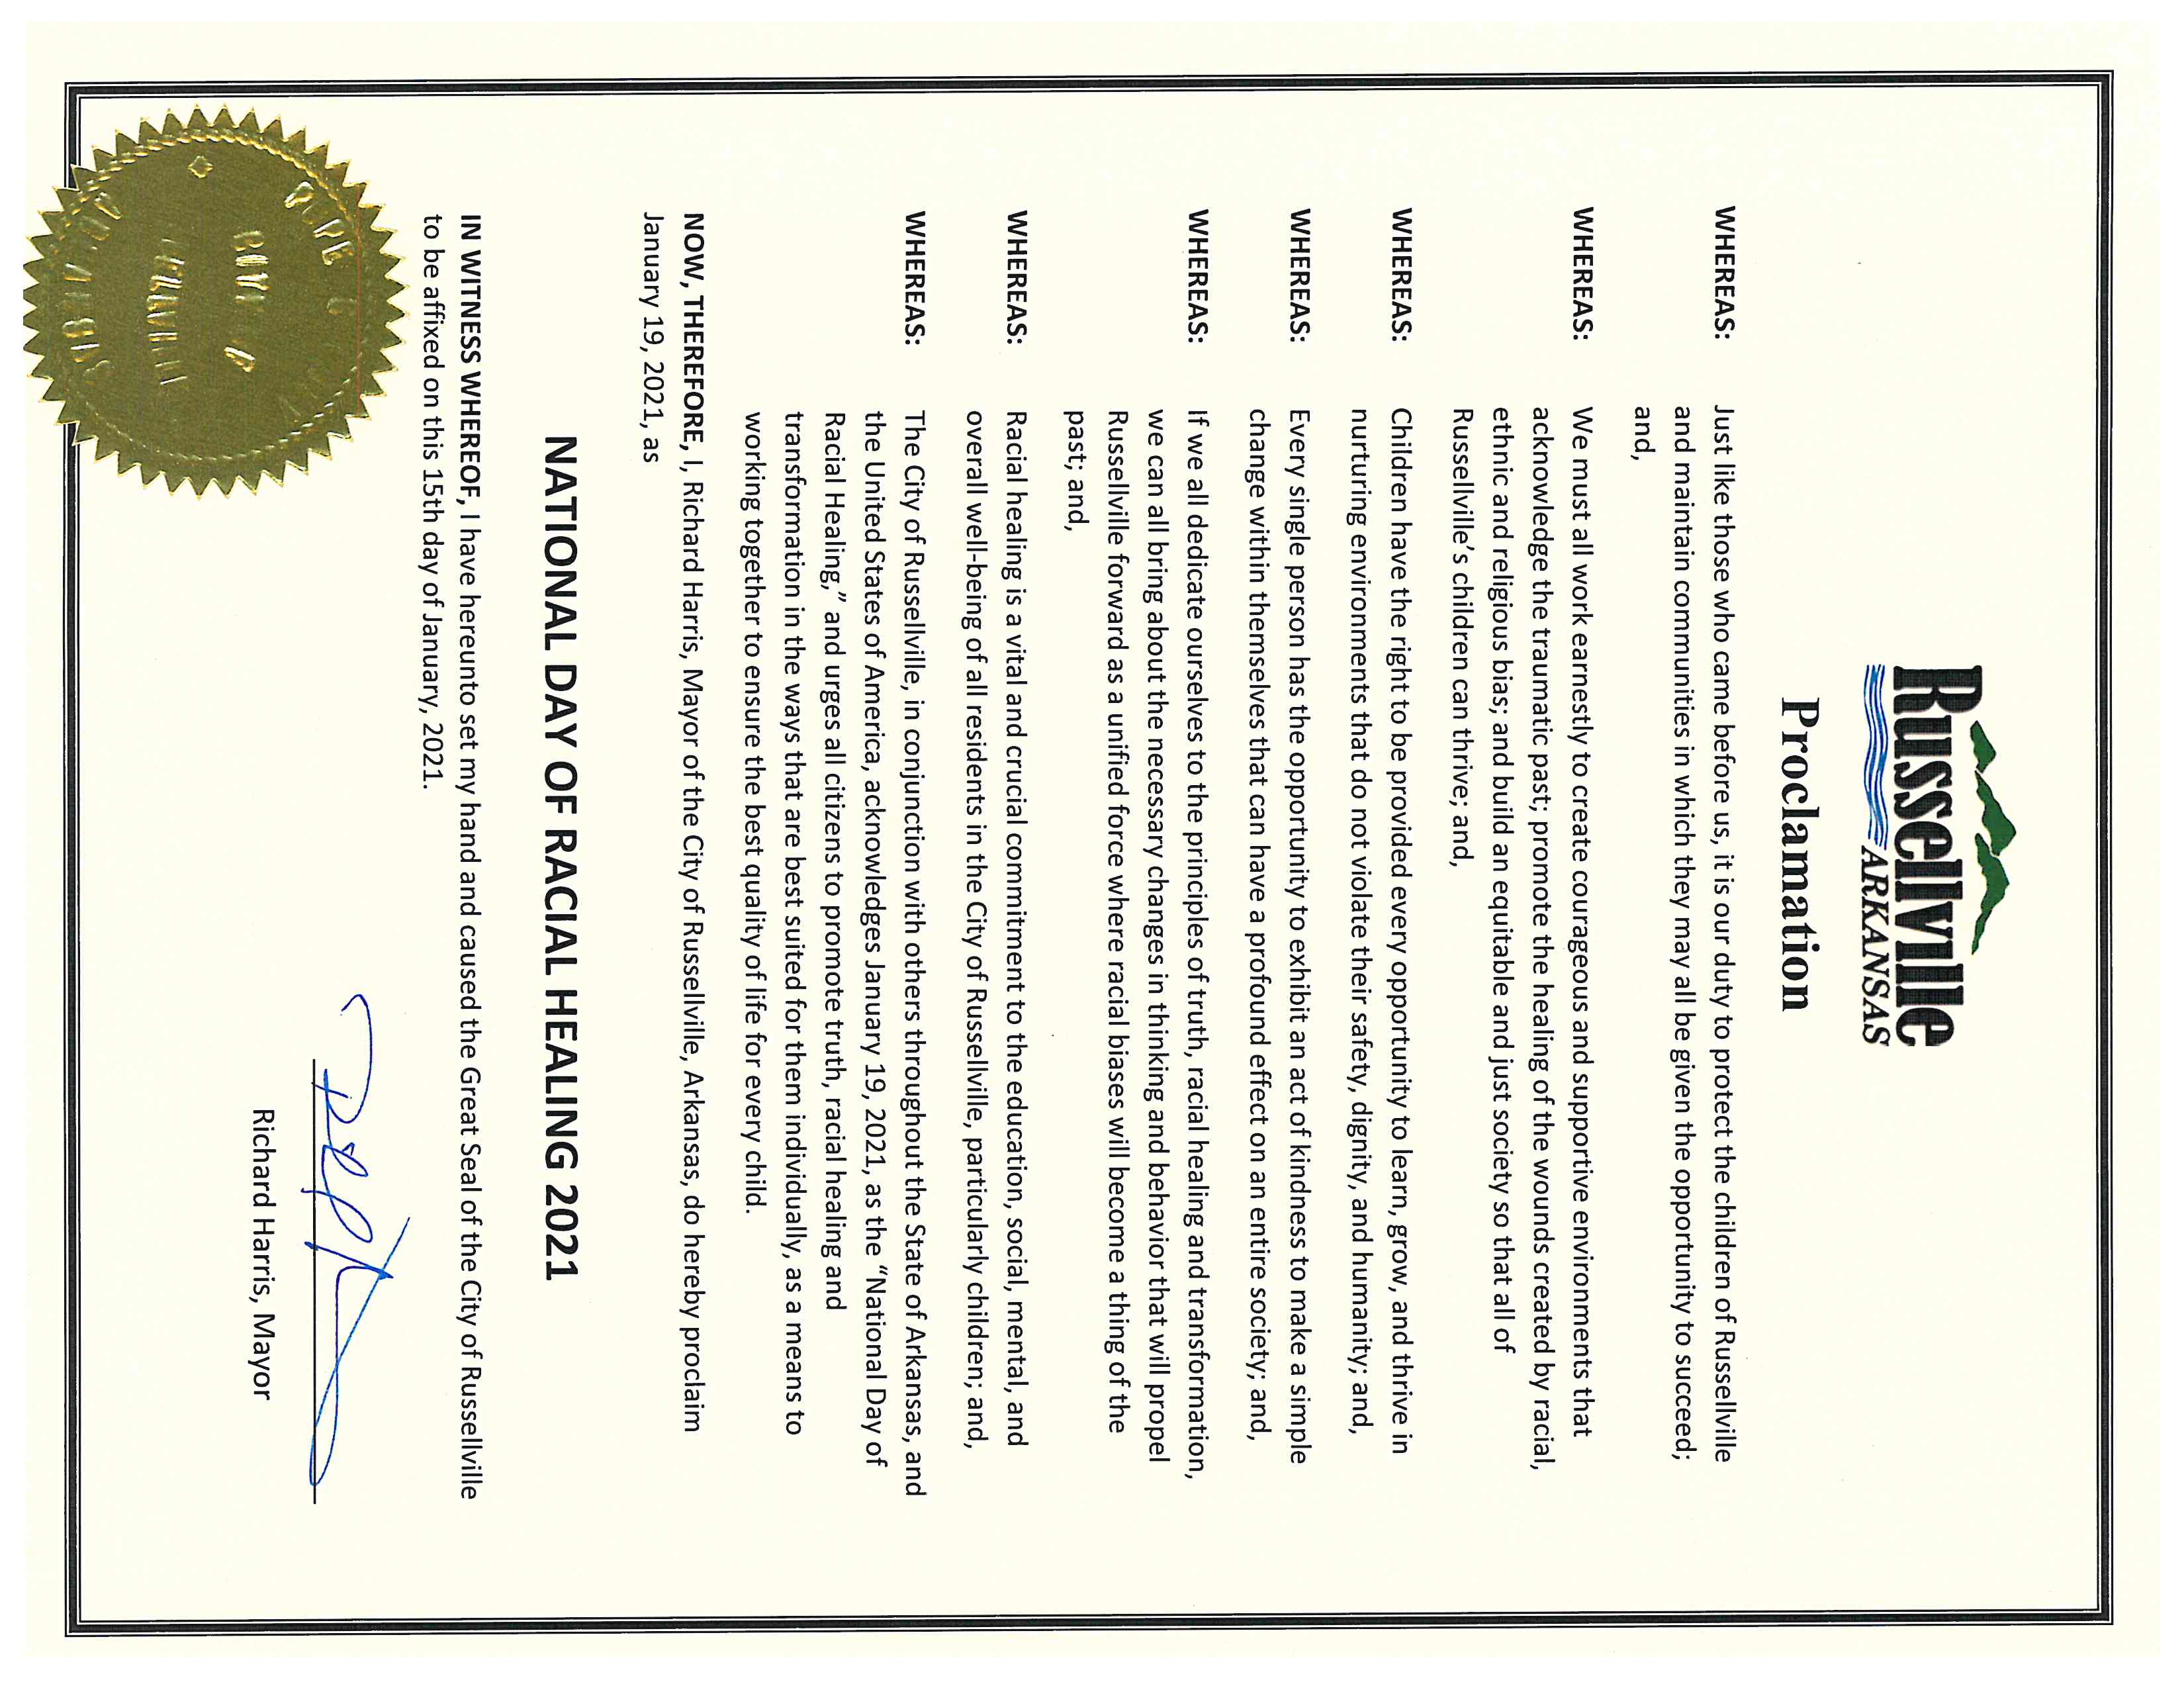 Proclamation - National Day of Racial Healing